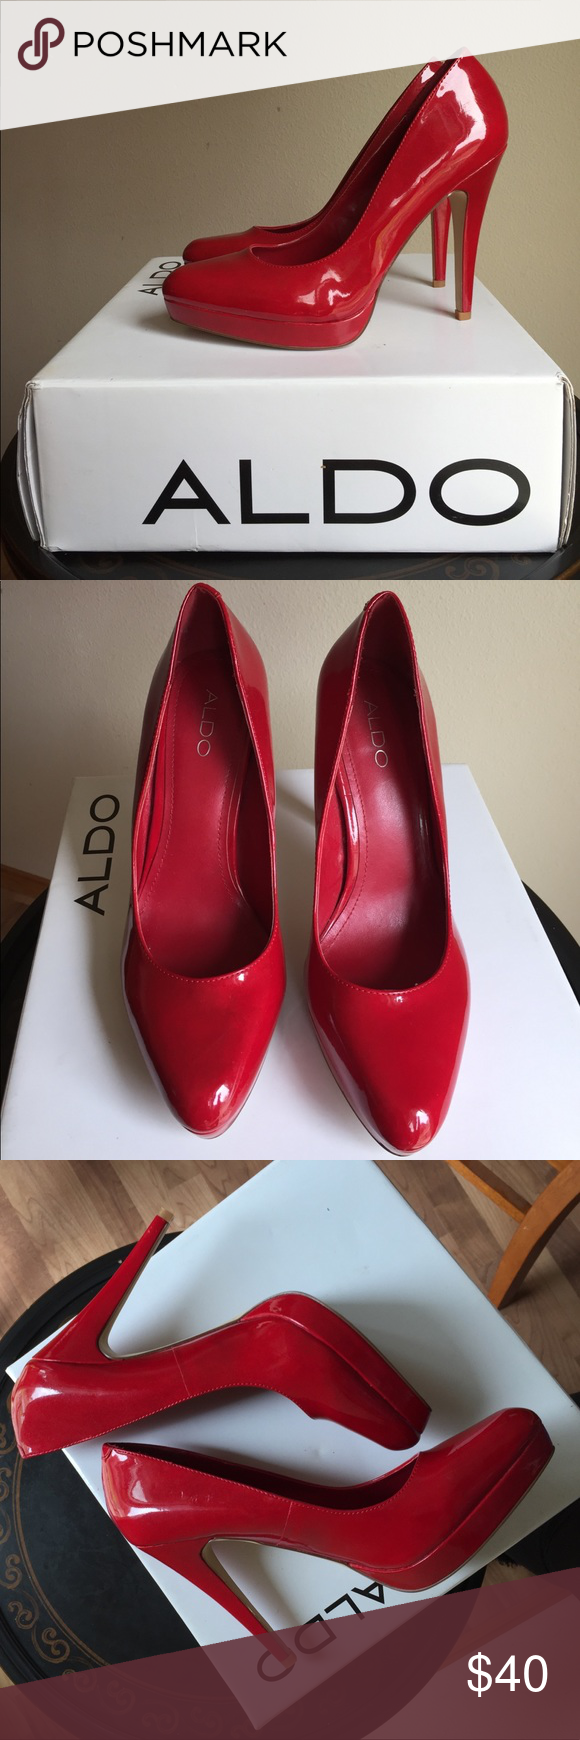 c8c99779a22 ALDO Red Patent Heels Like new condition! Unnoticeable Slight scratches  (see pictures). These are GORGEOUS and Confident statement shoes!